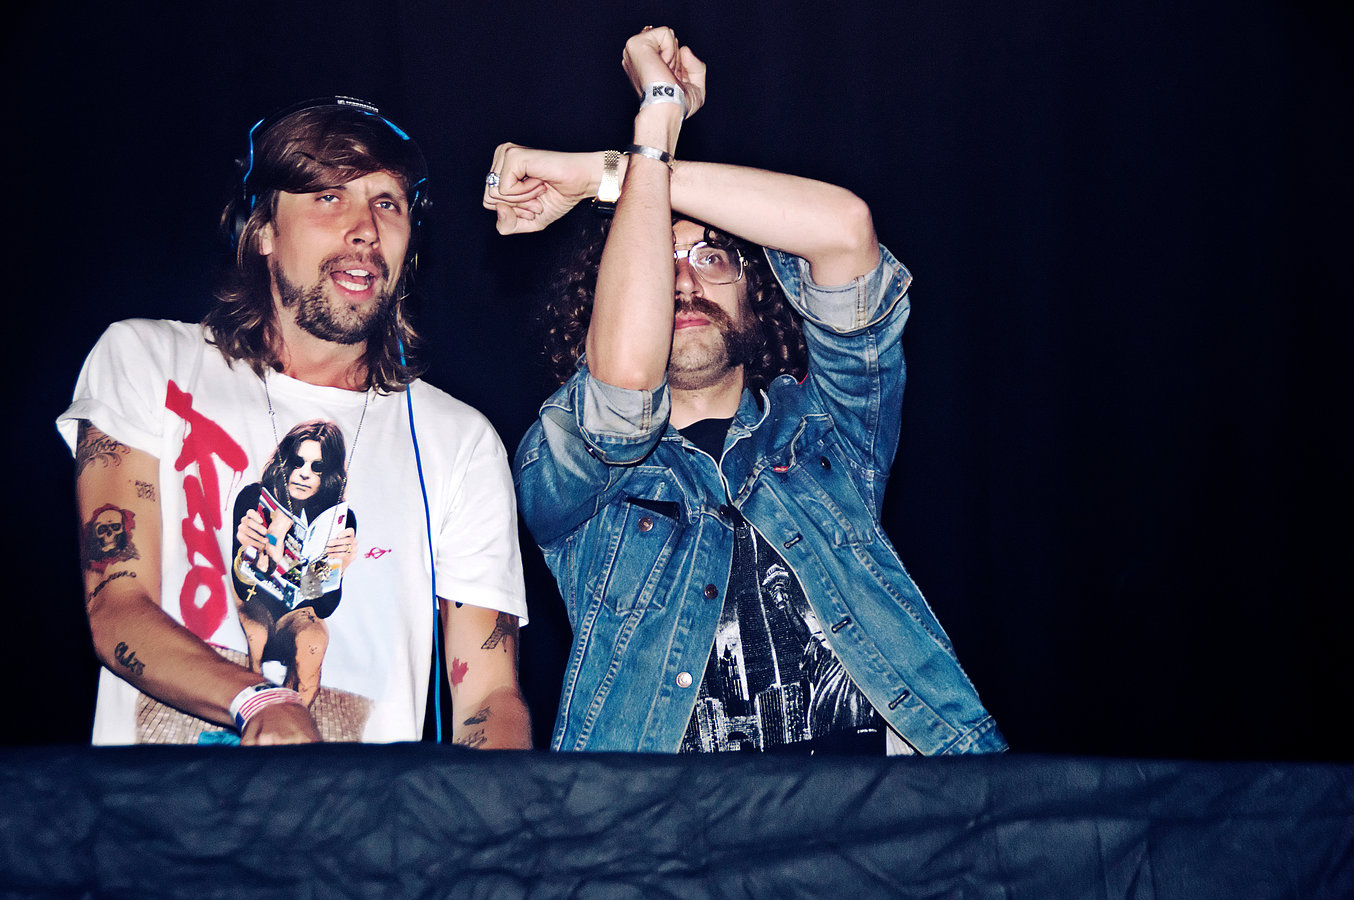 Busy P (Ed Banger) and Gaspard Aúge (Justice) | Koko London